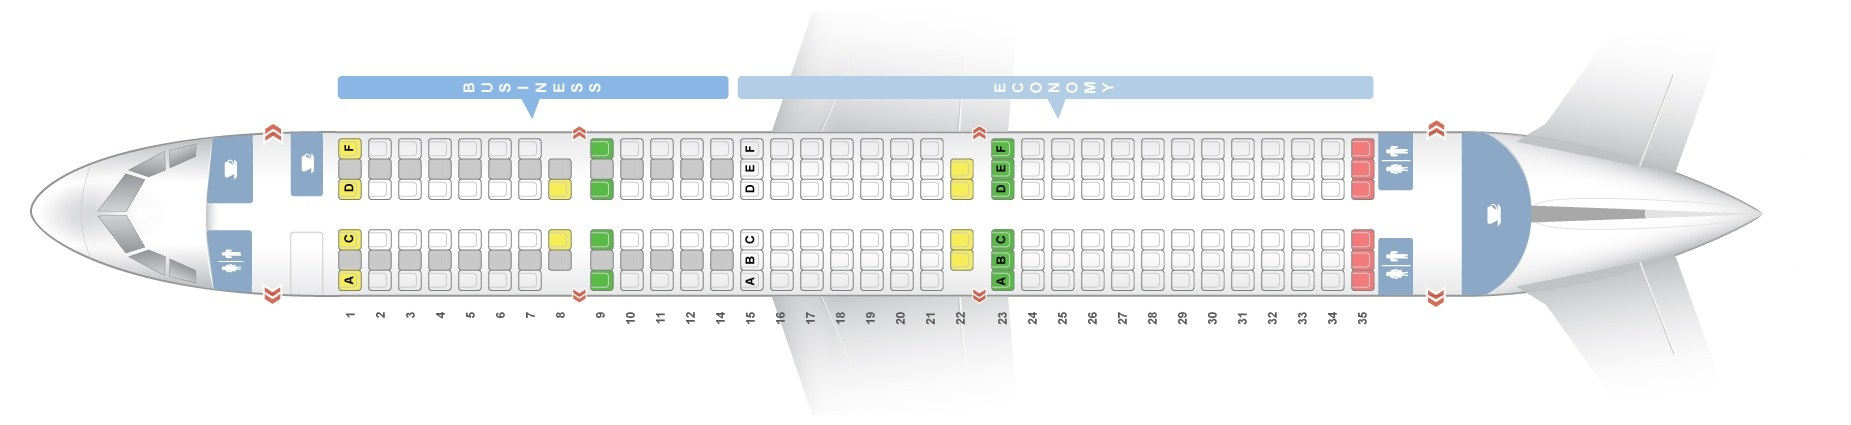 Seat map Airbus A321-200 Iberia. Best seats in the plane